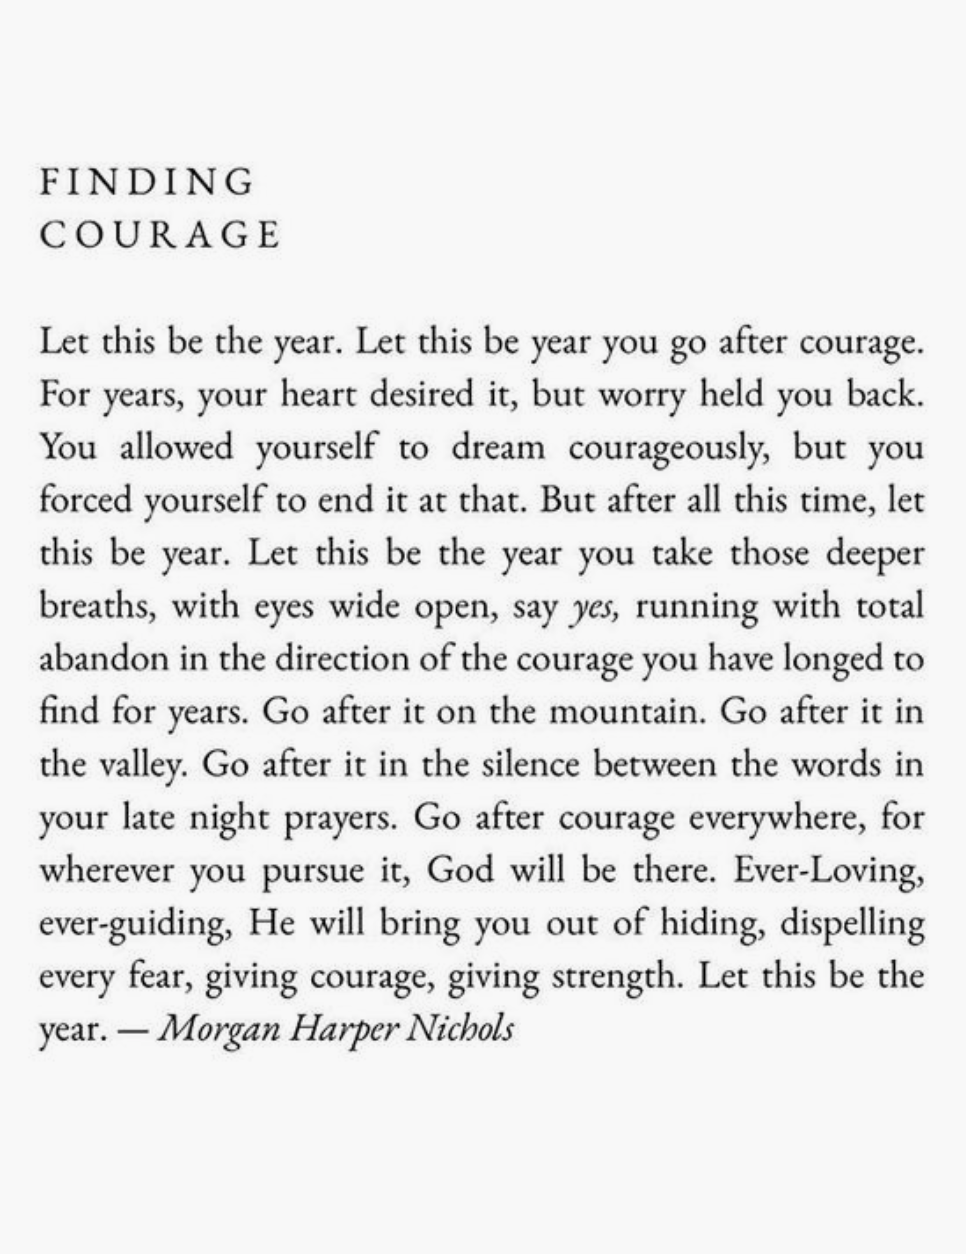 Courage Quotes Fascinating Finding Courage  Morgan Harper Nichols  Courage Quotes  Best Life .